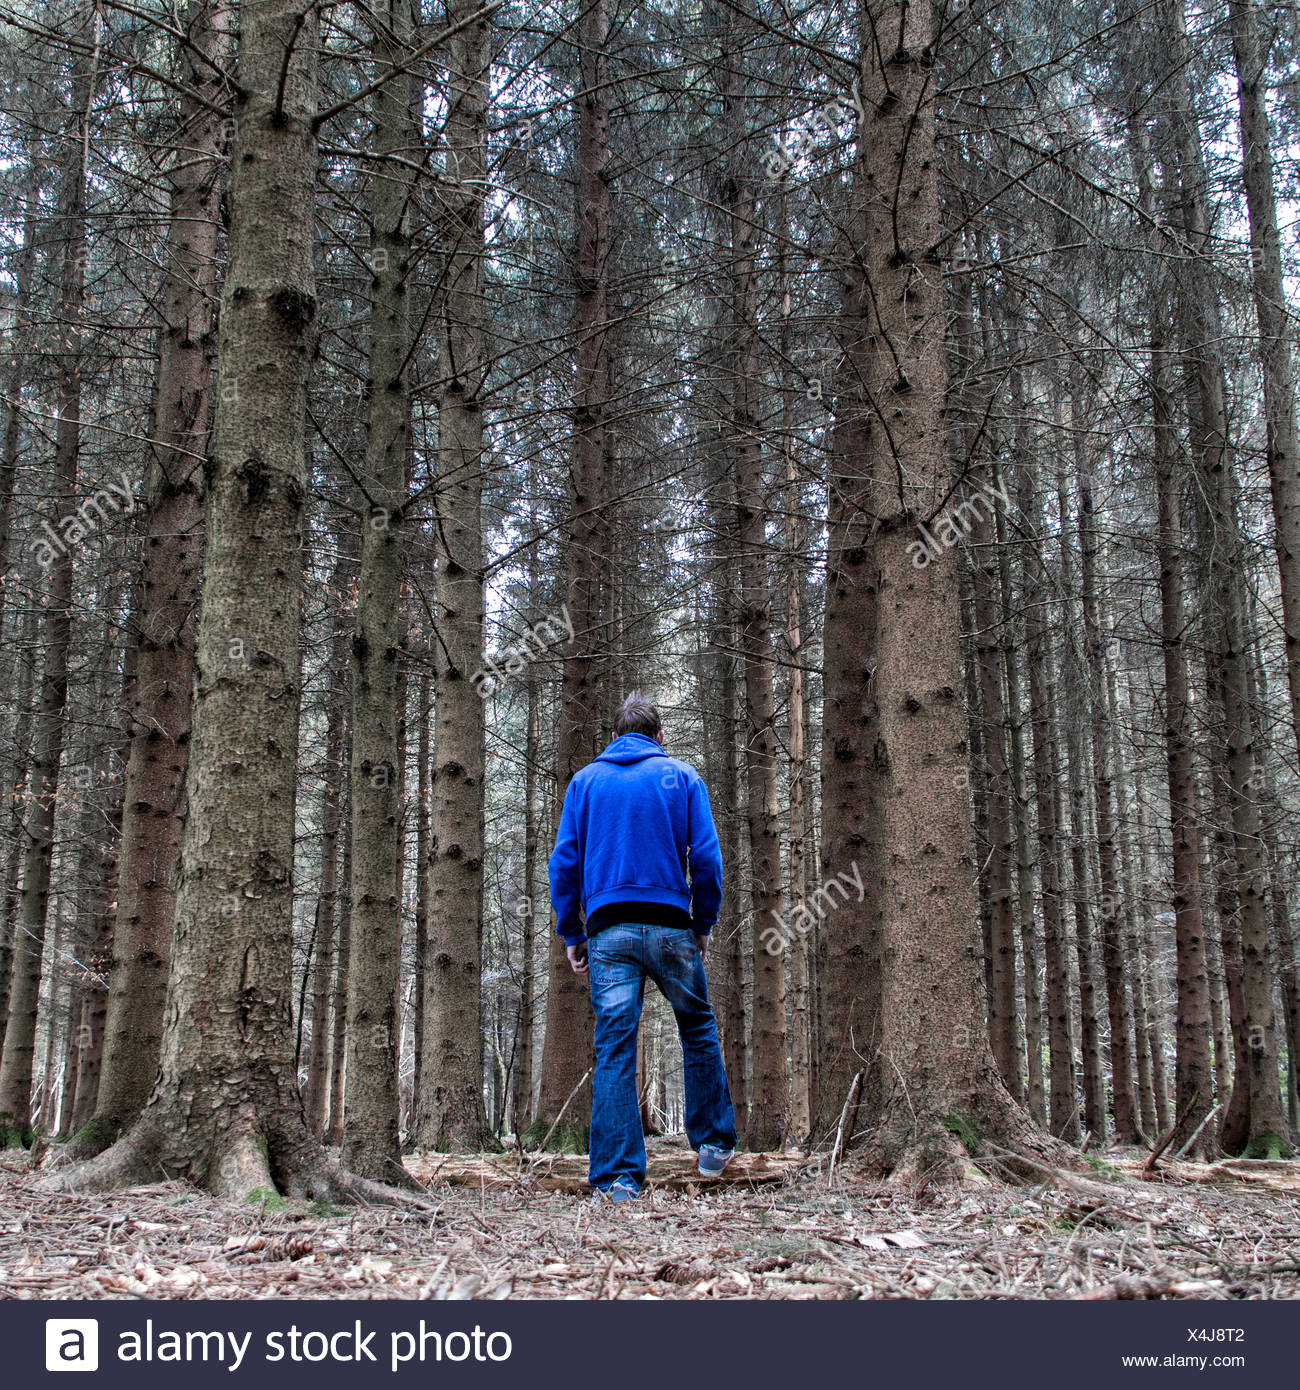 Man standing in forest - Stock Image